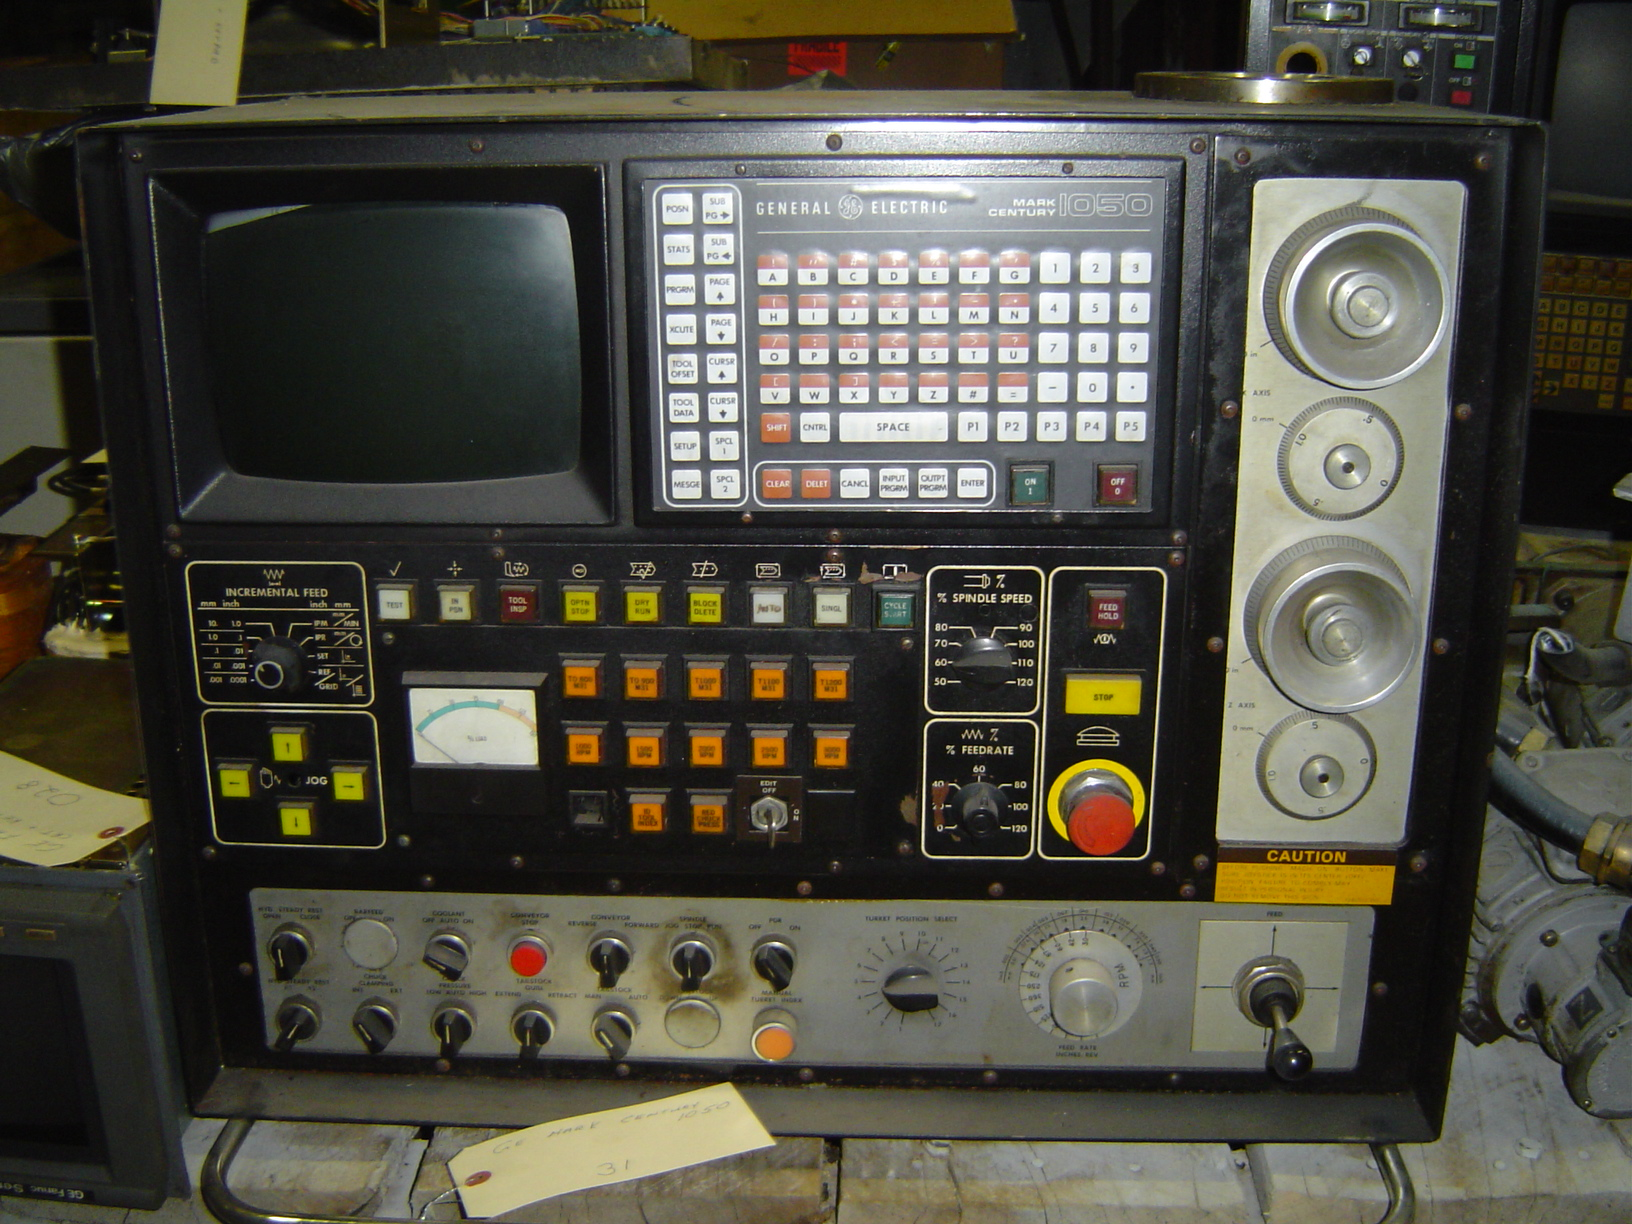 GENERAL ELECTRIC CENTURY 1050 CNC CONTROL PANEL, CRT AND KEYBOARD